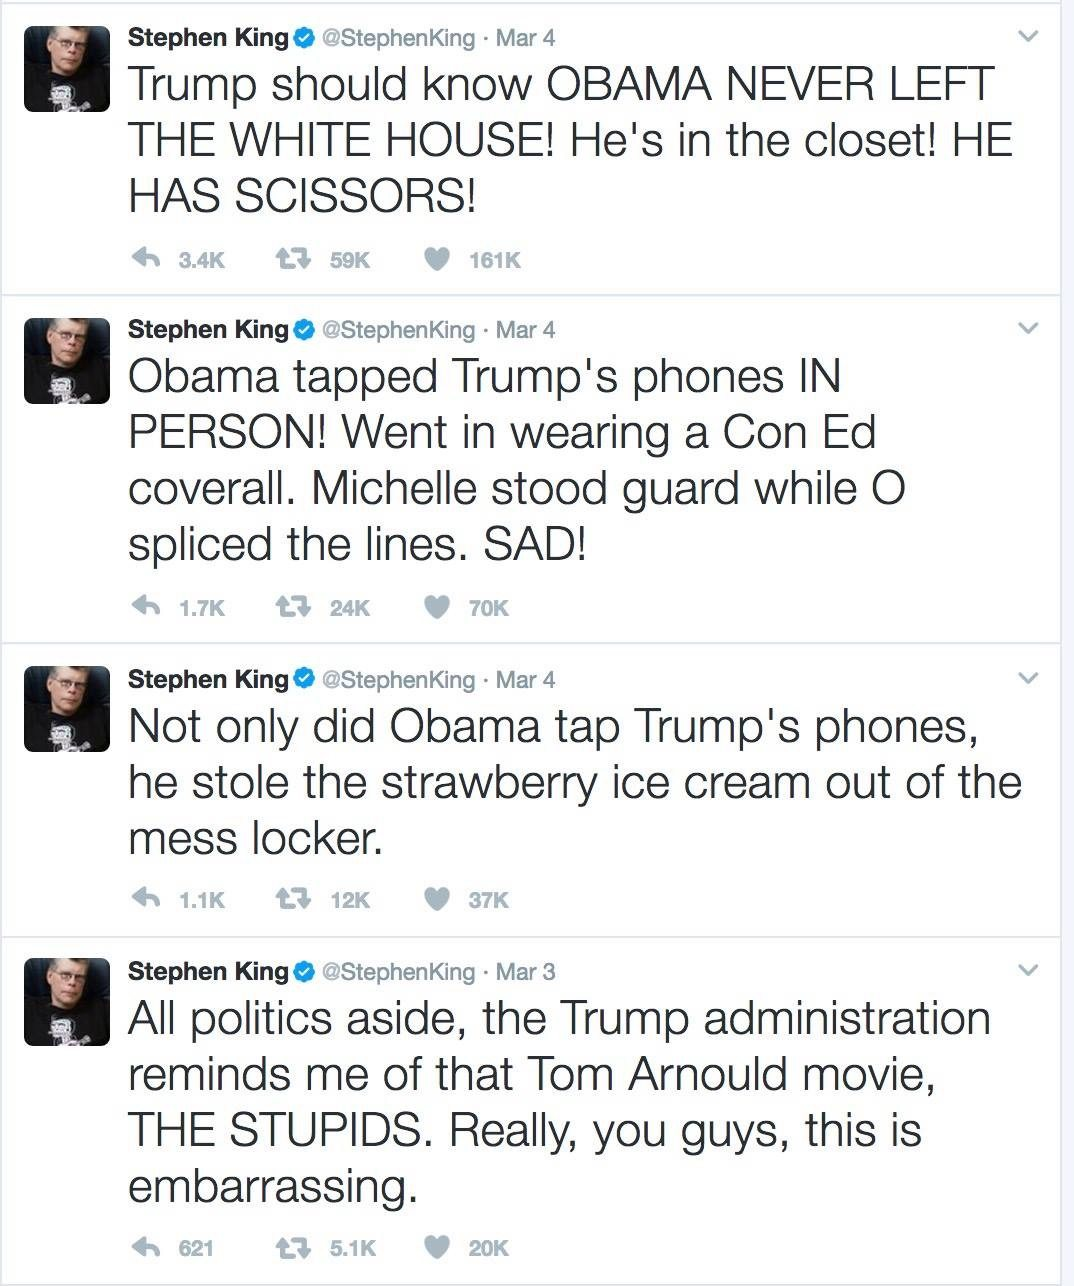 Image Stephen King tweets re Trump Obama wire tap claims MAR4